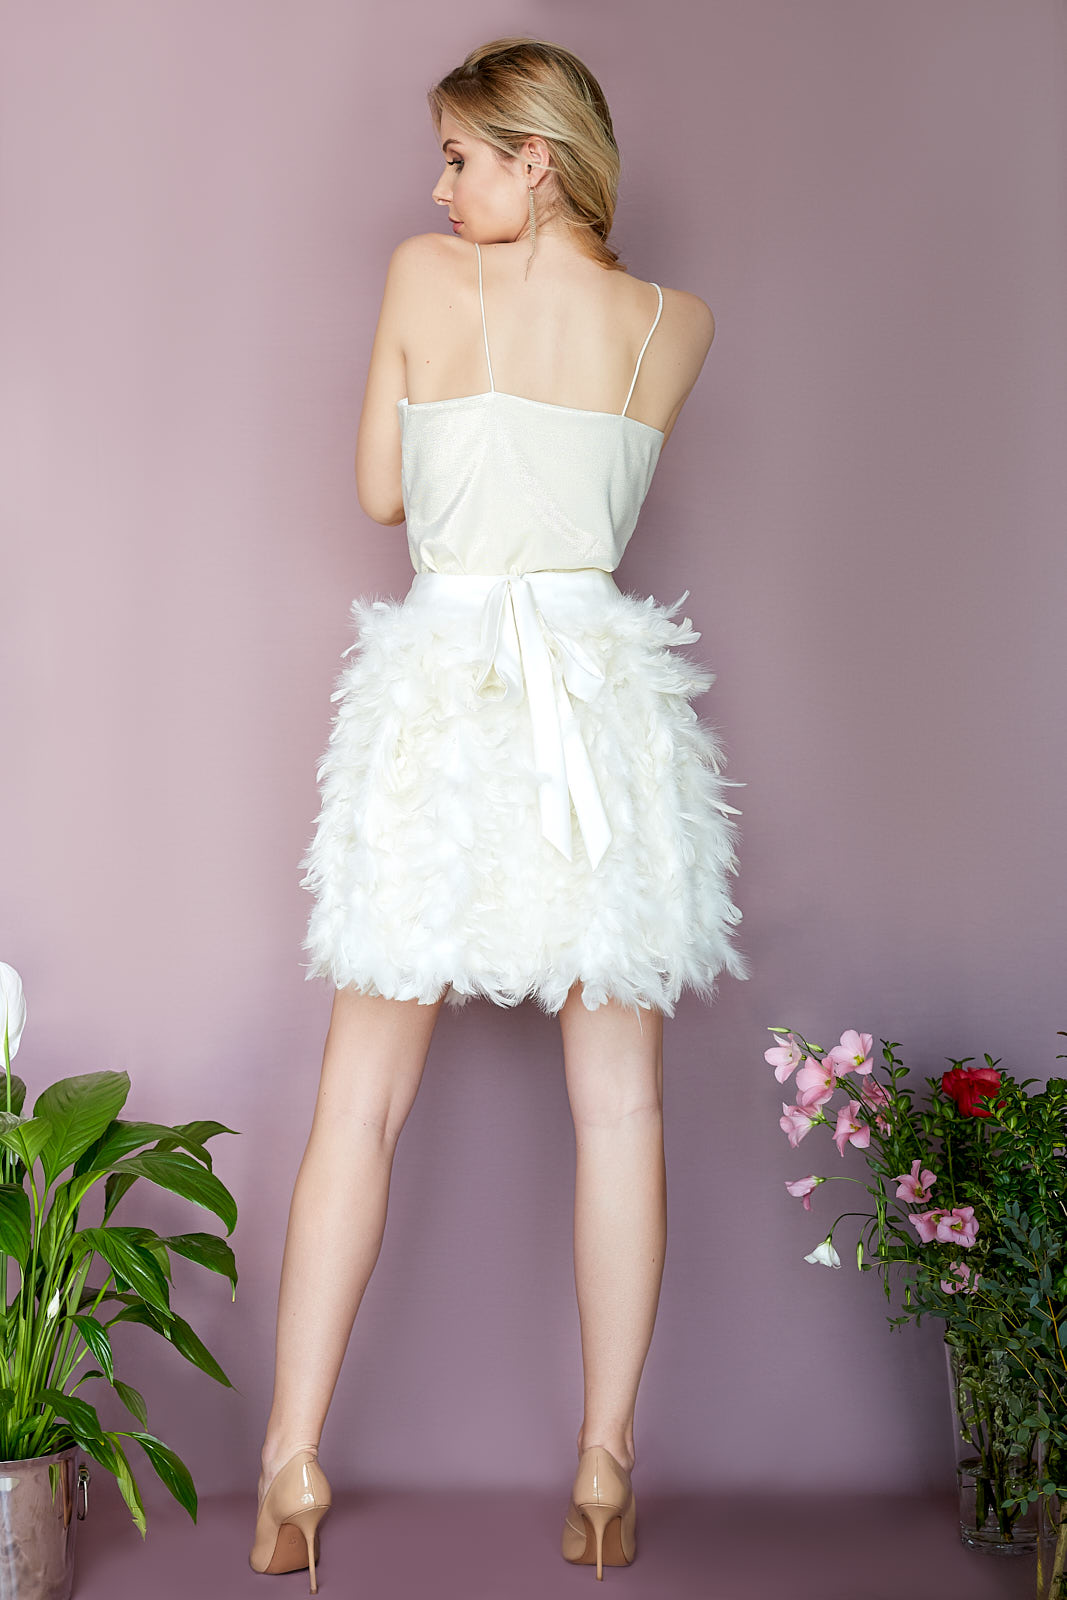 Lurex Cami & MOSCOW Feather Skirt  Lurex Top with Ultra Thin Spaghetti Straps  Real Feather Skirt with Viscose Lining